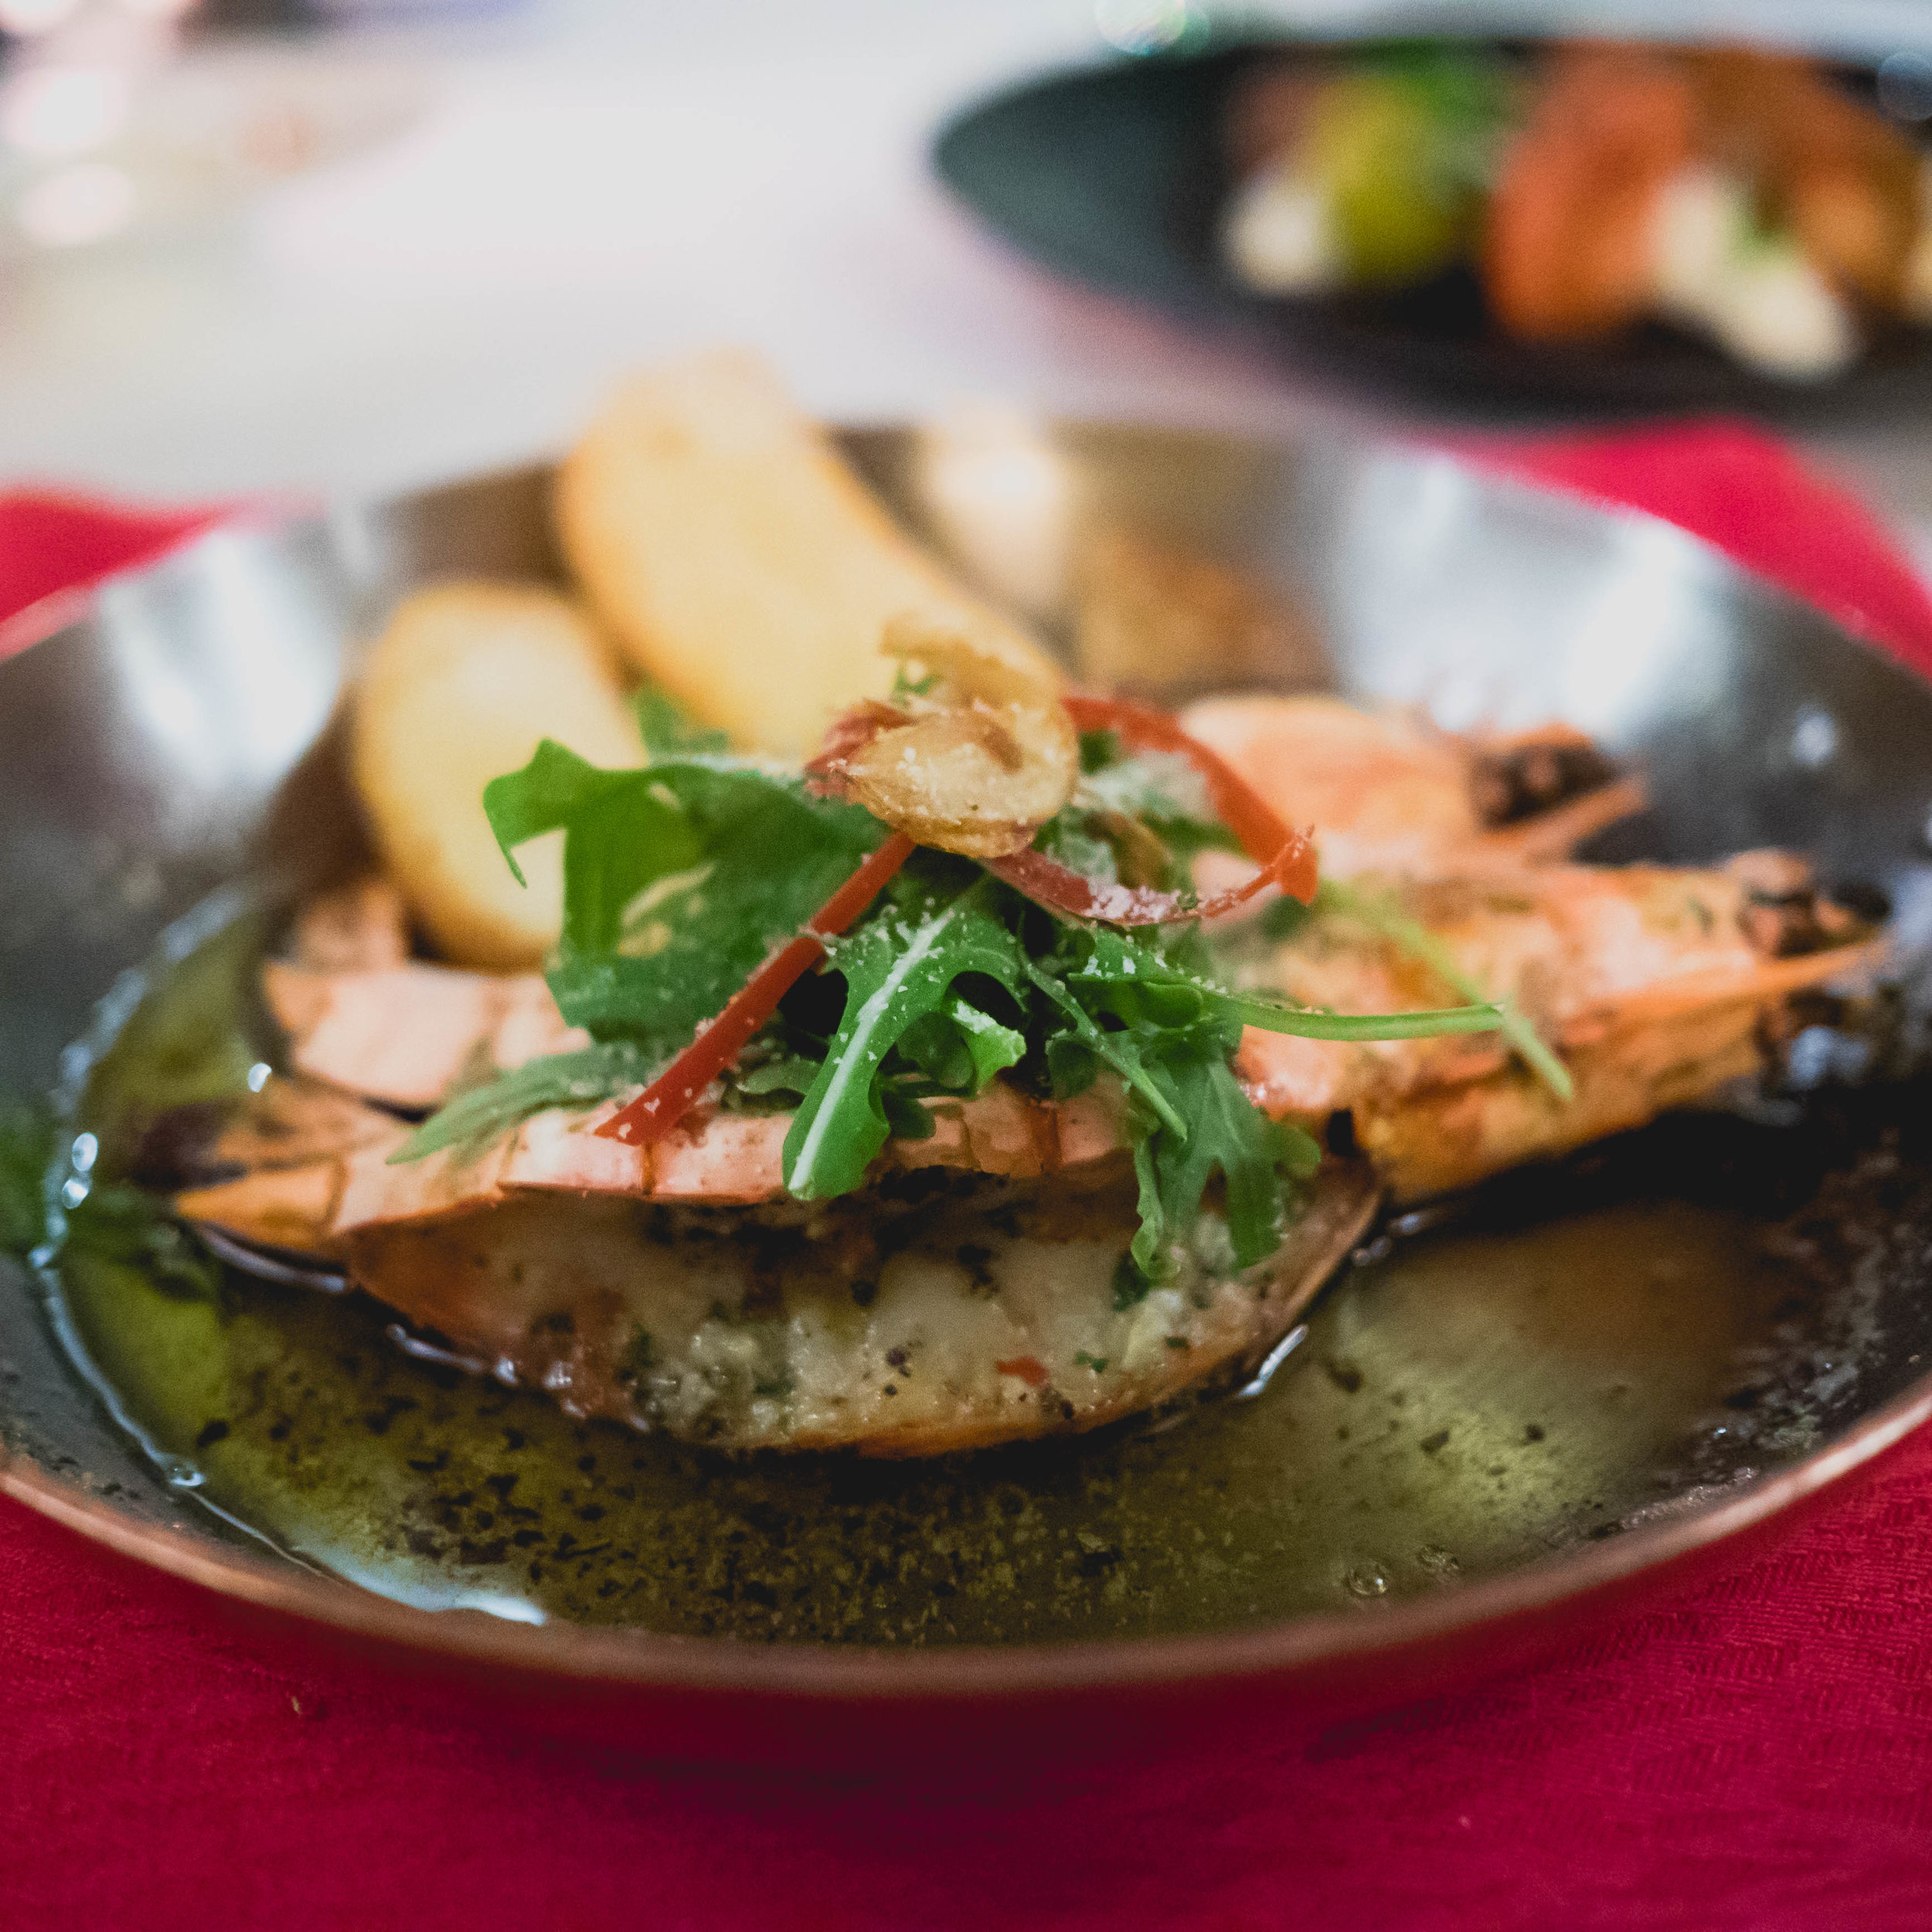 allegria's  2 king prawns from the wood fire oven  with garlic and chili butter and pangritata.